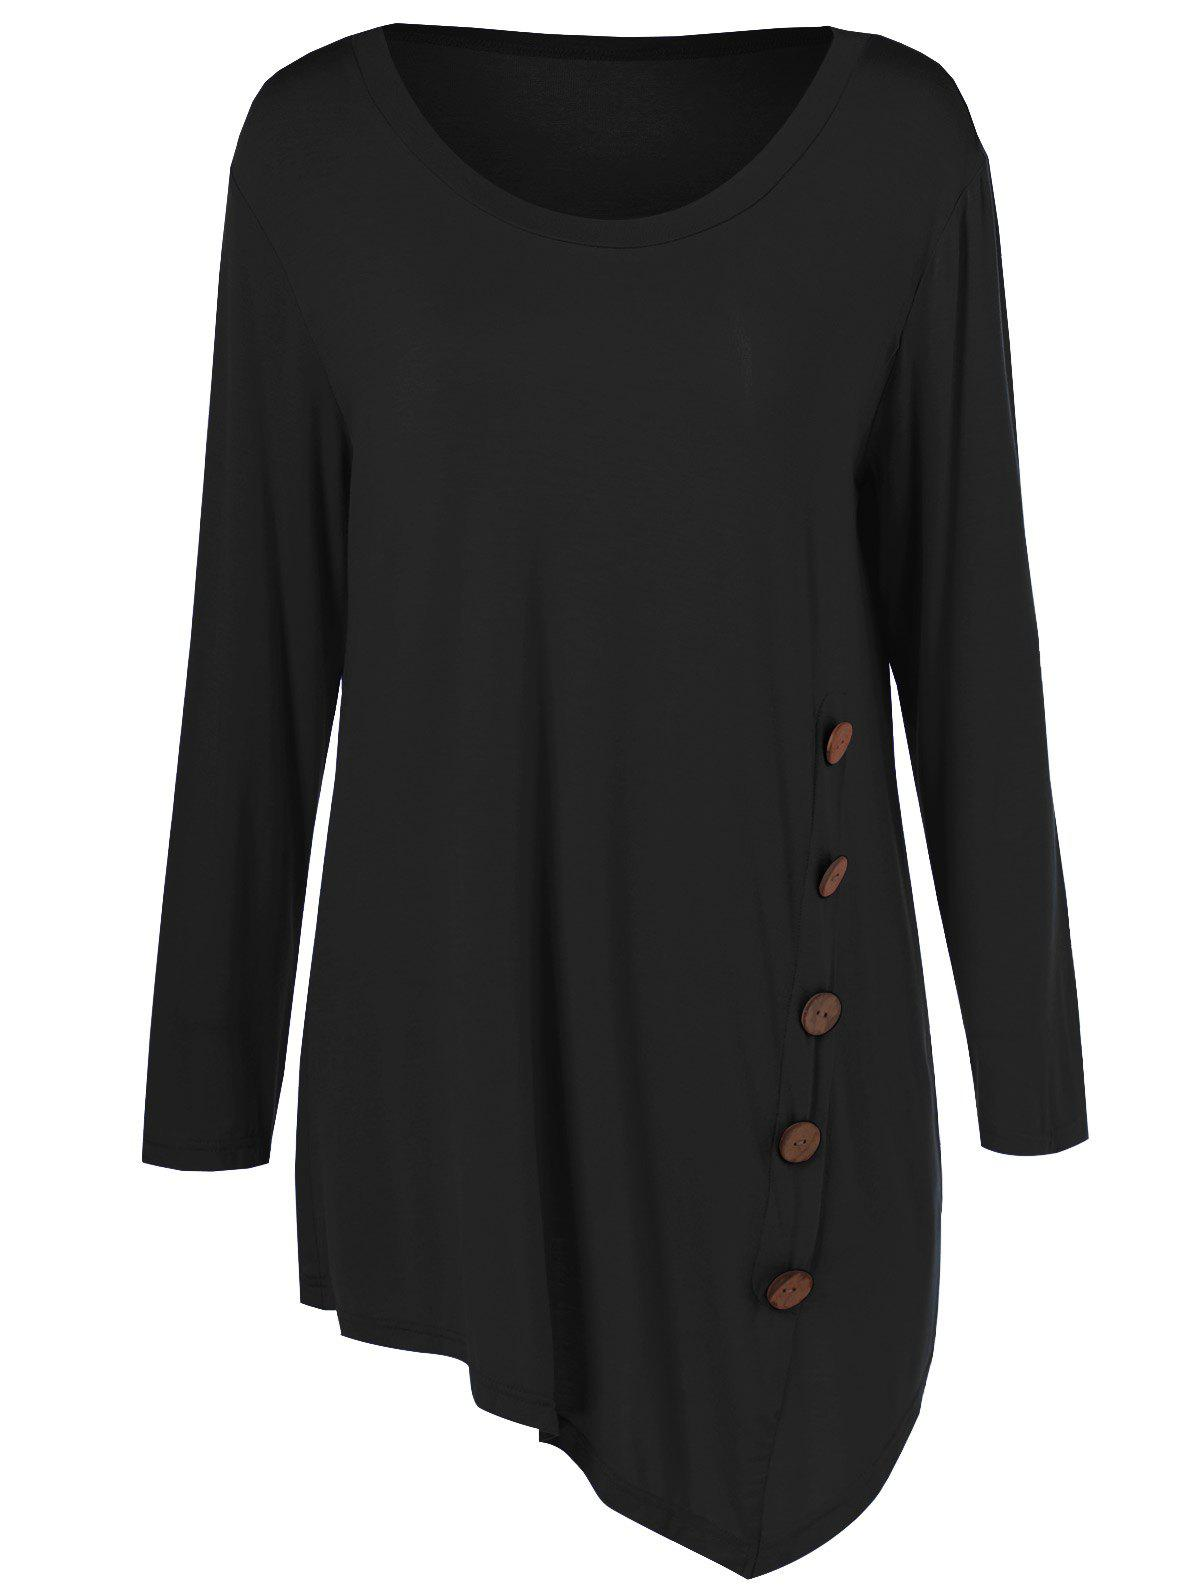 Plus Size Inclined Buttoned Blouse - BLACK 2XL